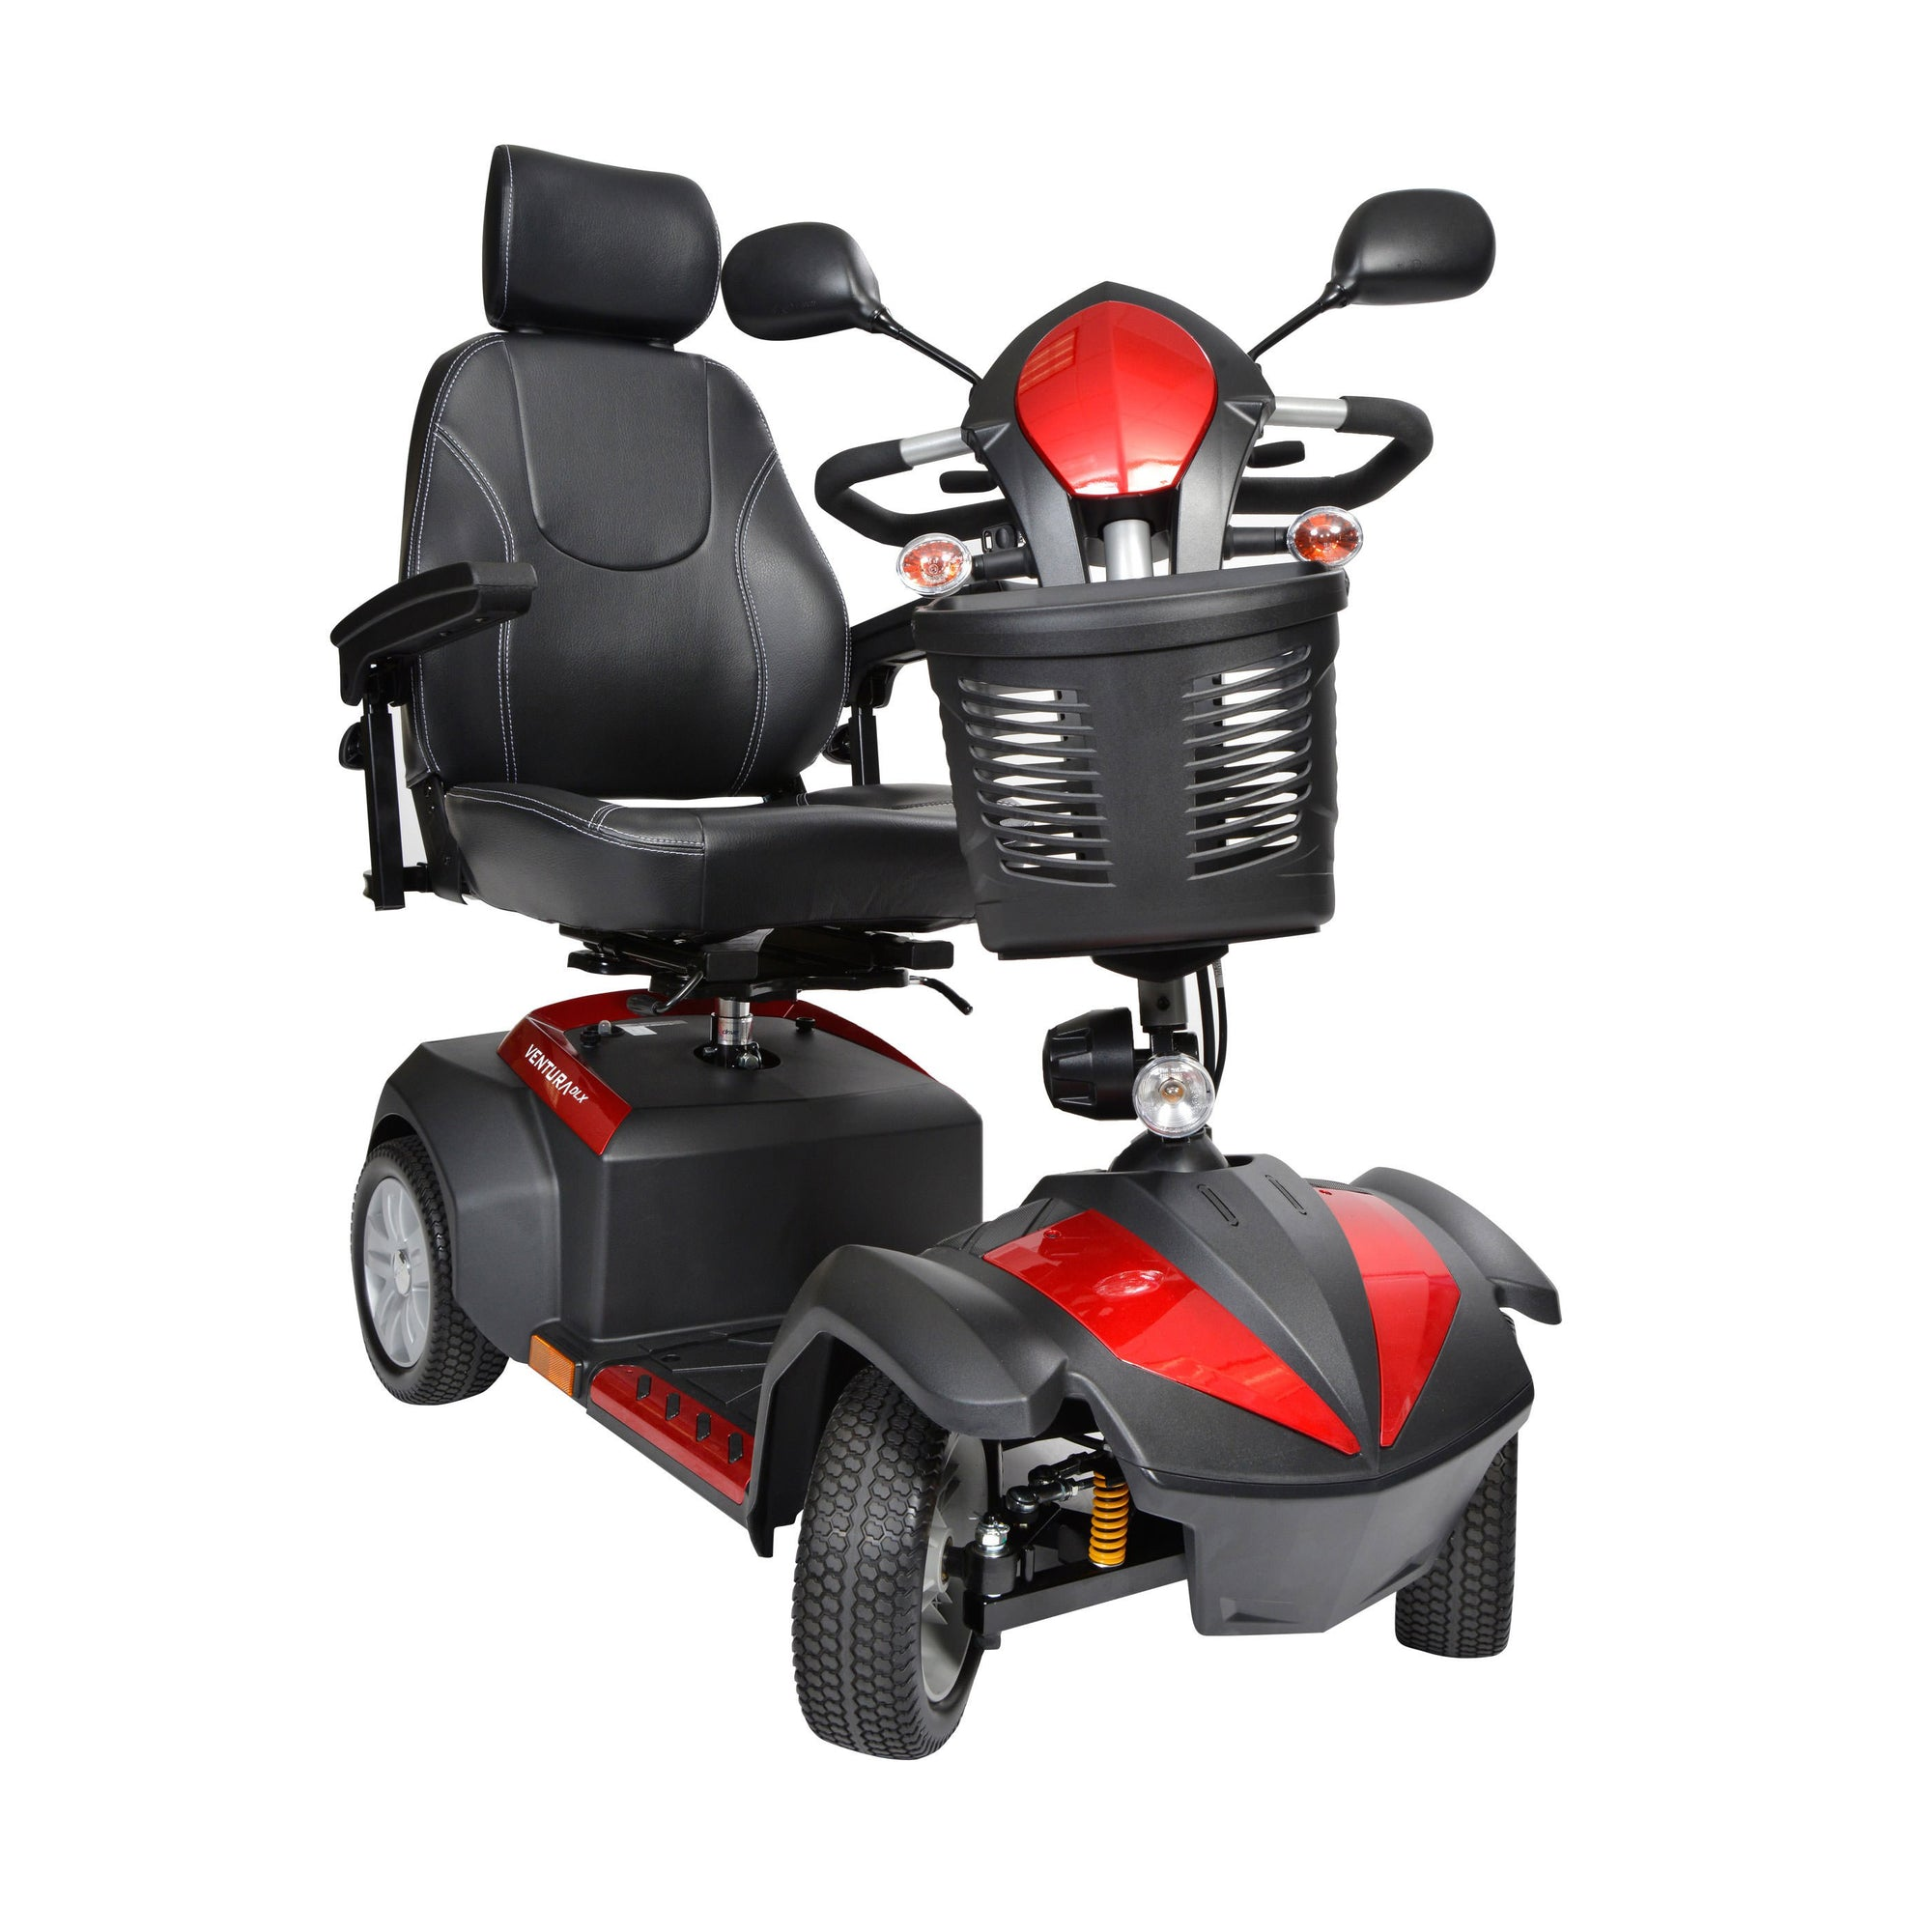 Ventura 4 Wheel Deluxe Midsize Scooter